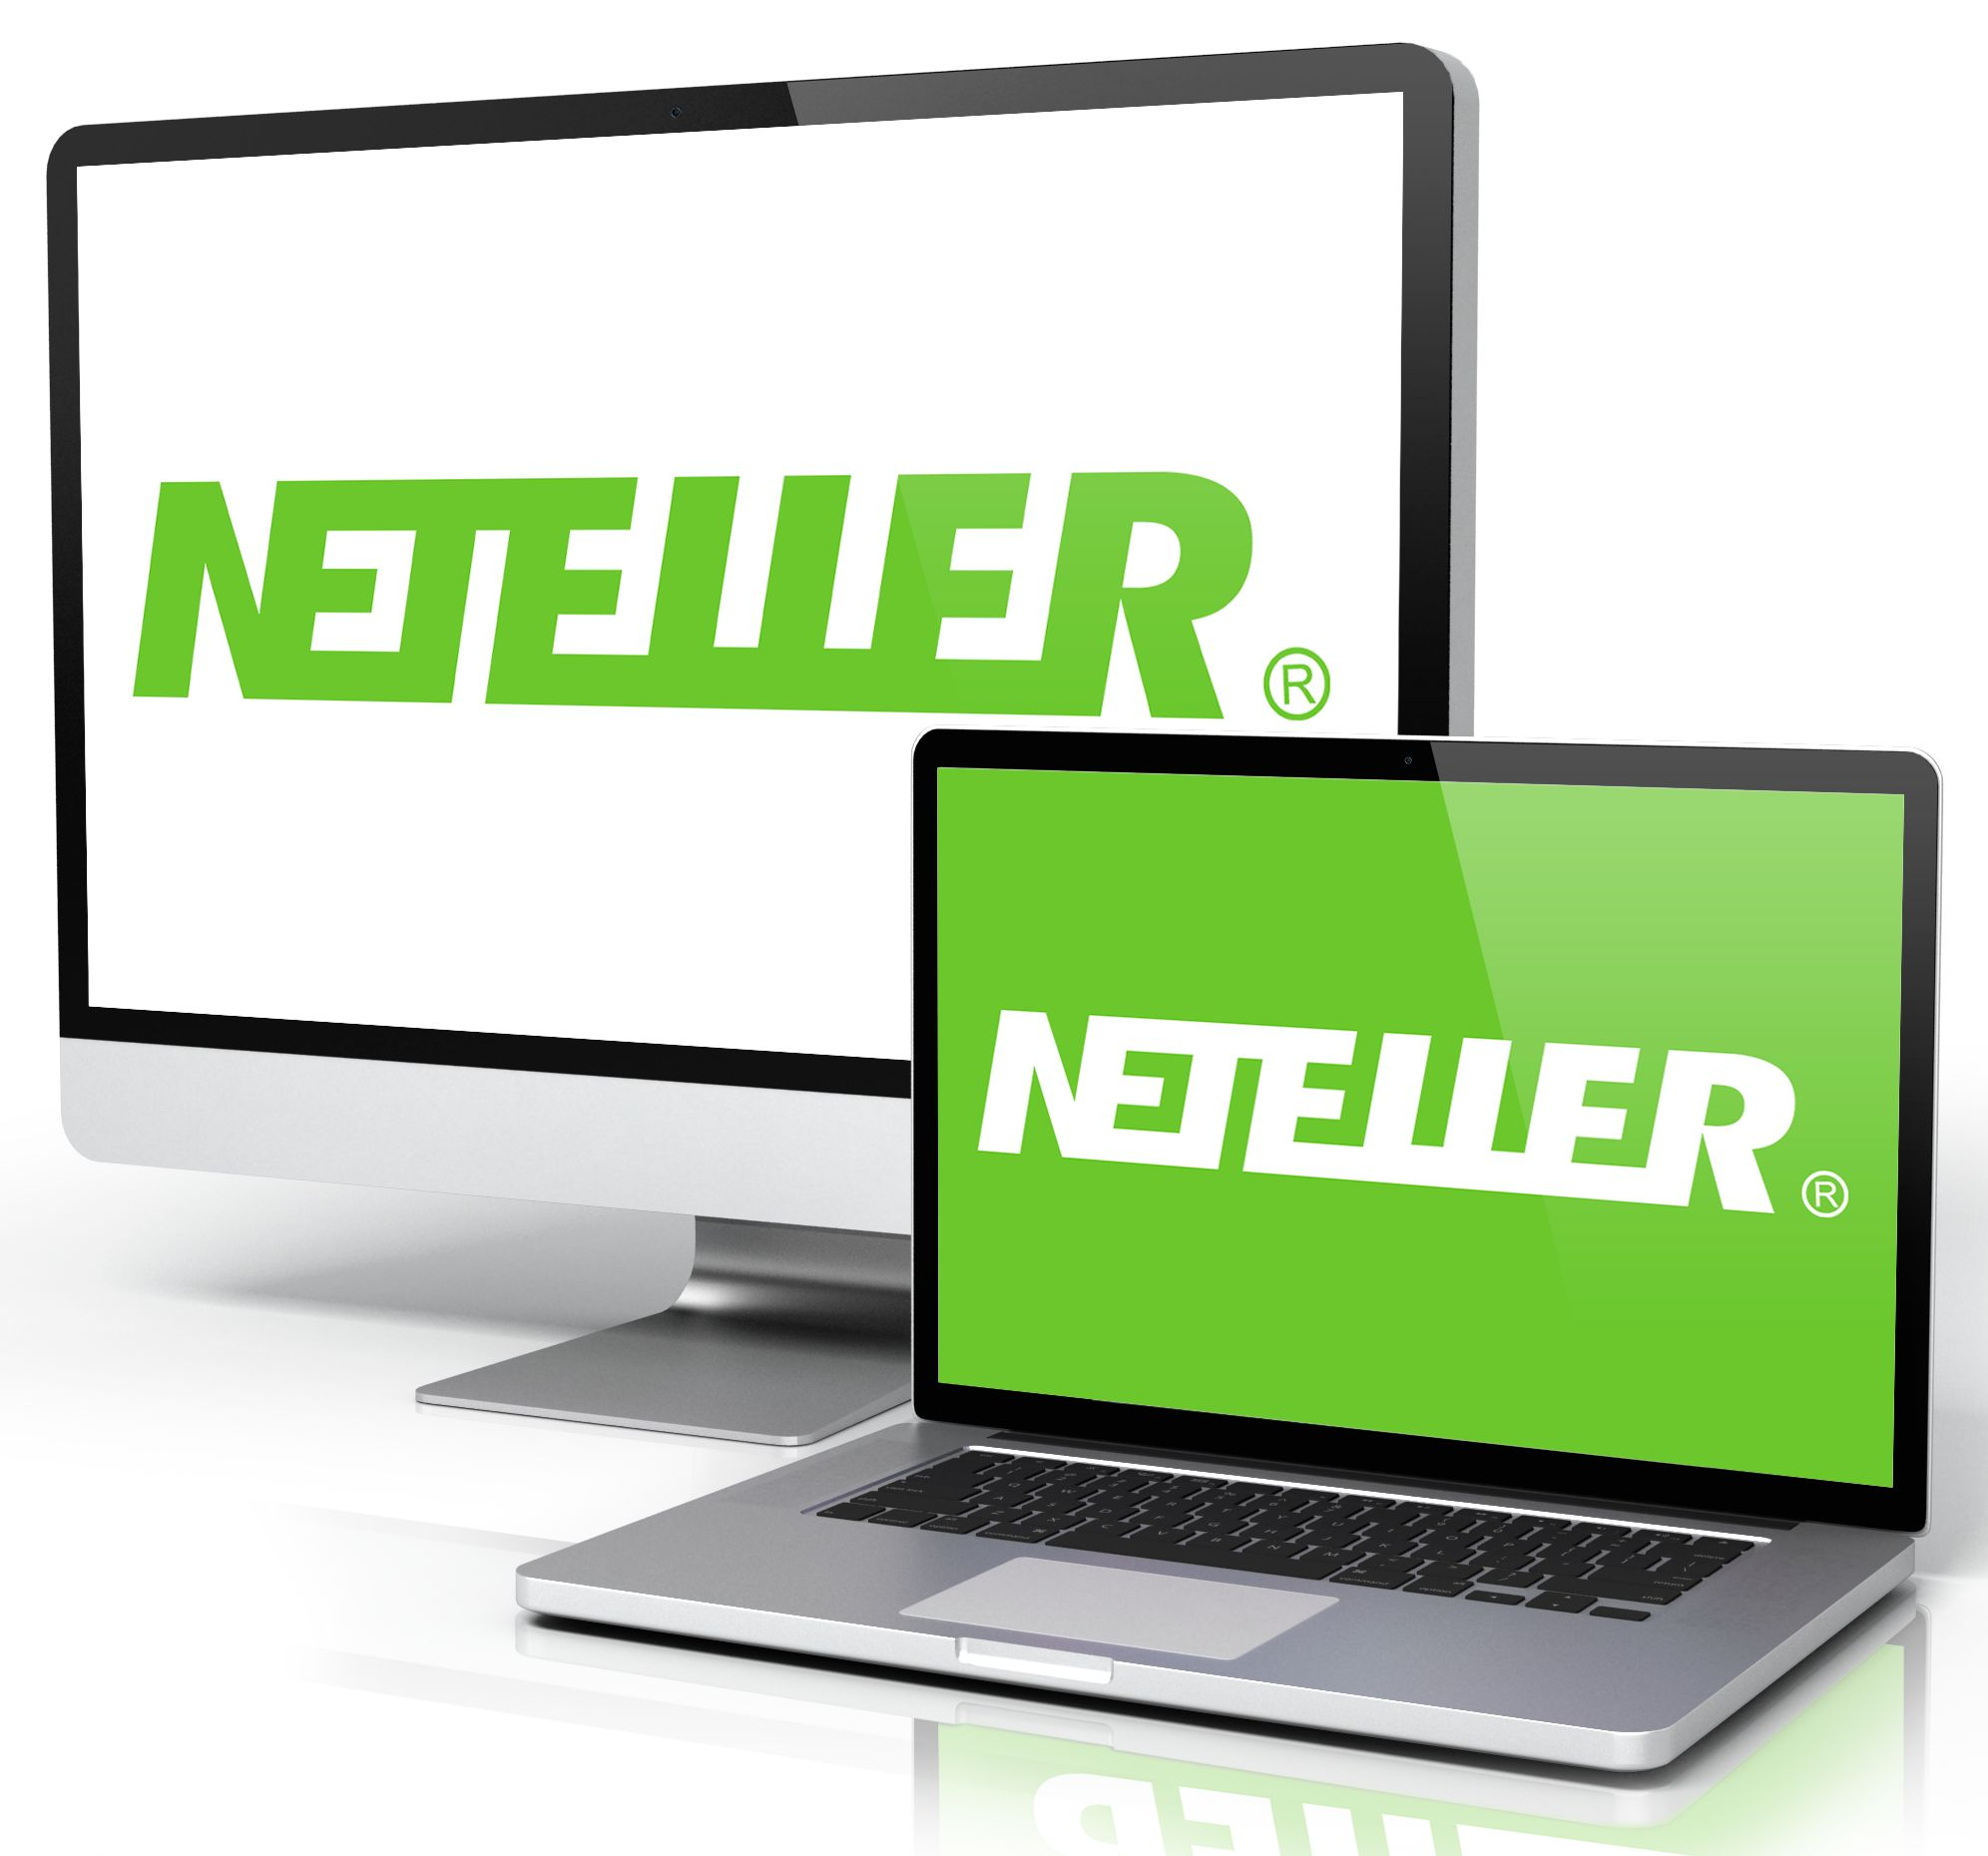 What banking options can Neteller offer?